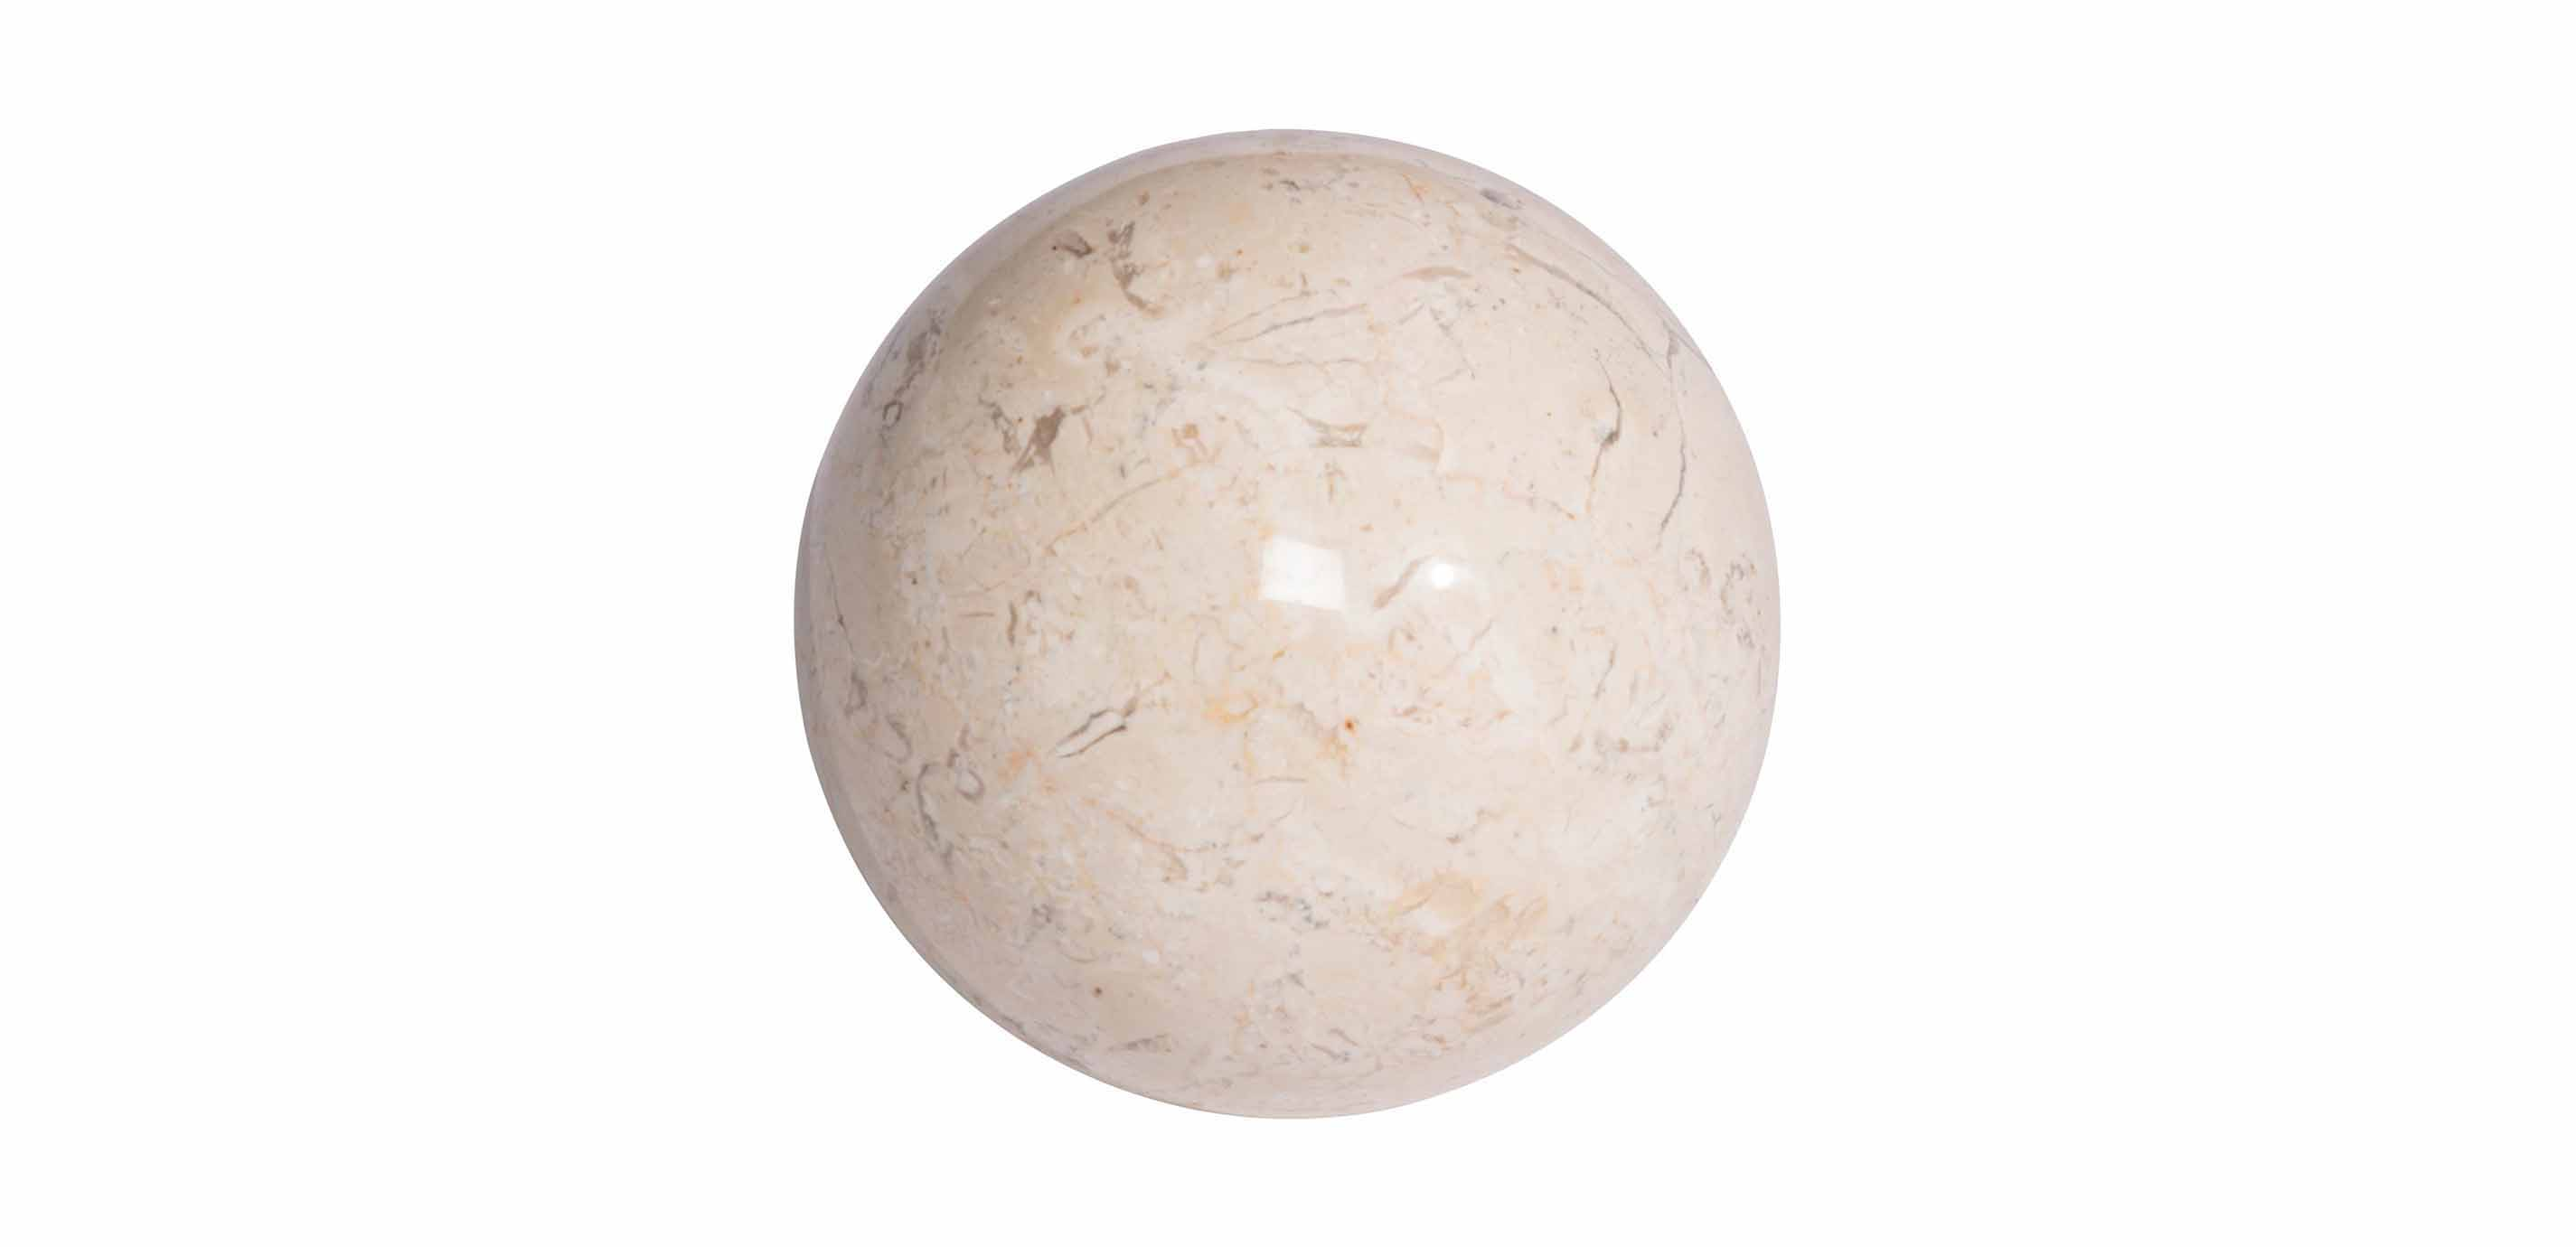 Lampe Arne Jacobsen White Stone Ball | Decorative Objects | Ethan Allen